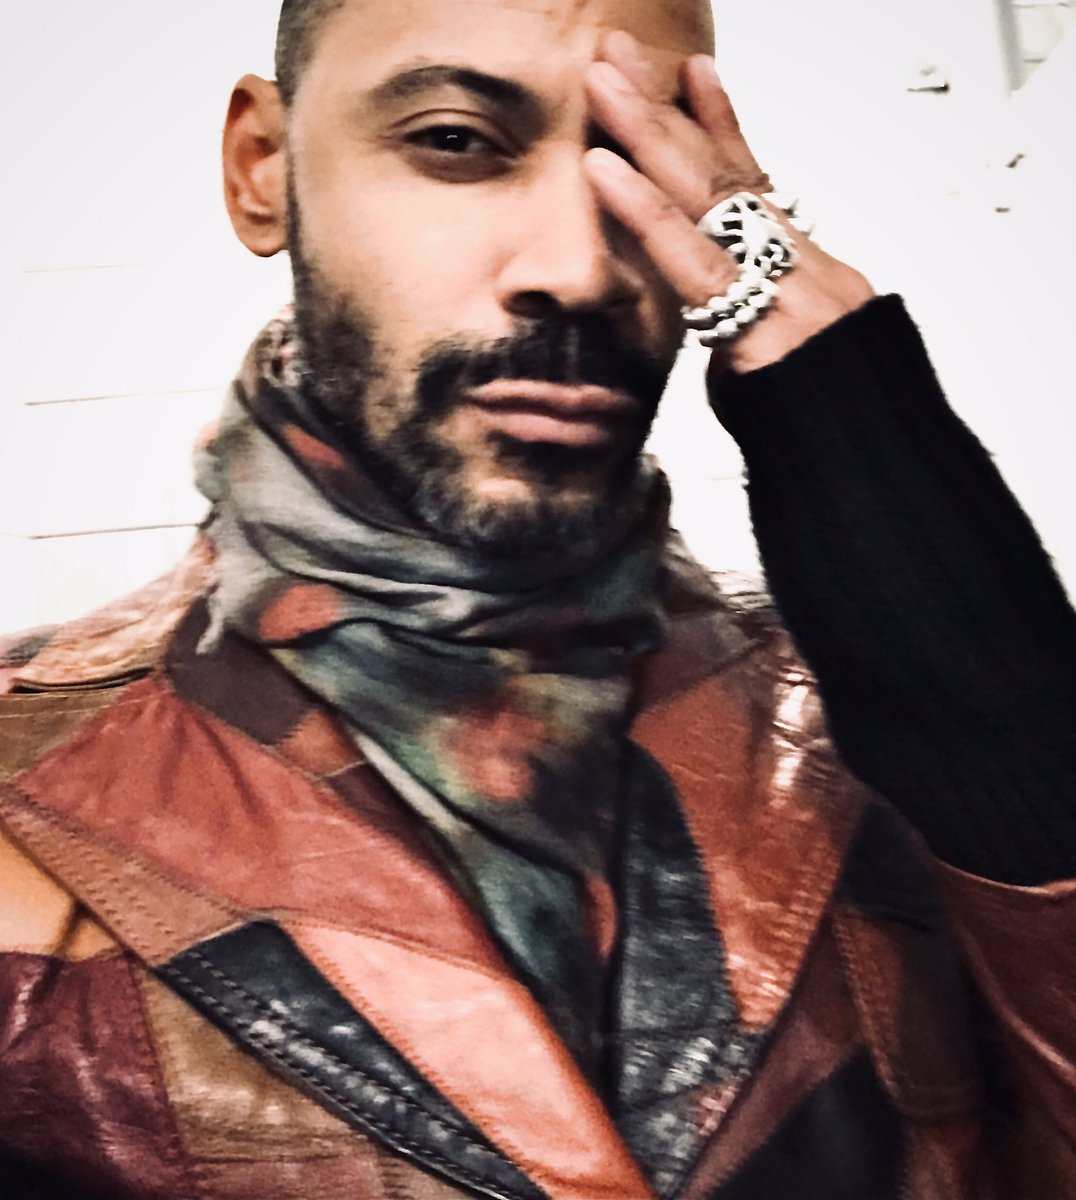 Cool & coordinated. Even I found myself surprised at how this vintage leather jacket and Paul Smith scarf meshed together. It wasn't made in heaven but surely a great pairing.   #beards #fashion #rudyreednyc #lifeofastyliat #meninfashion pic.twitter.com/DCqalenE9j